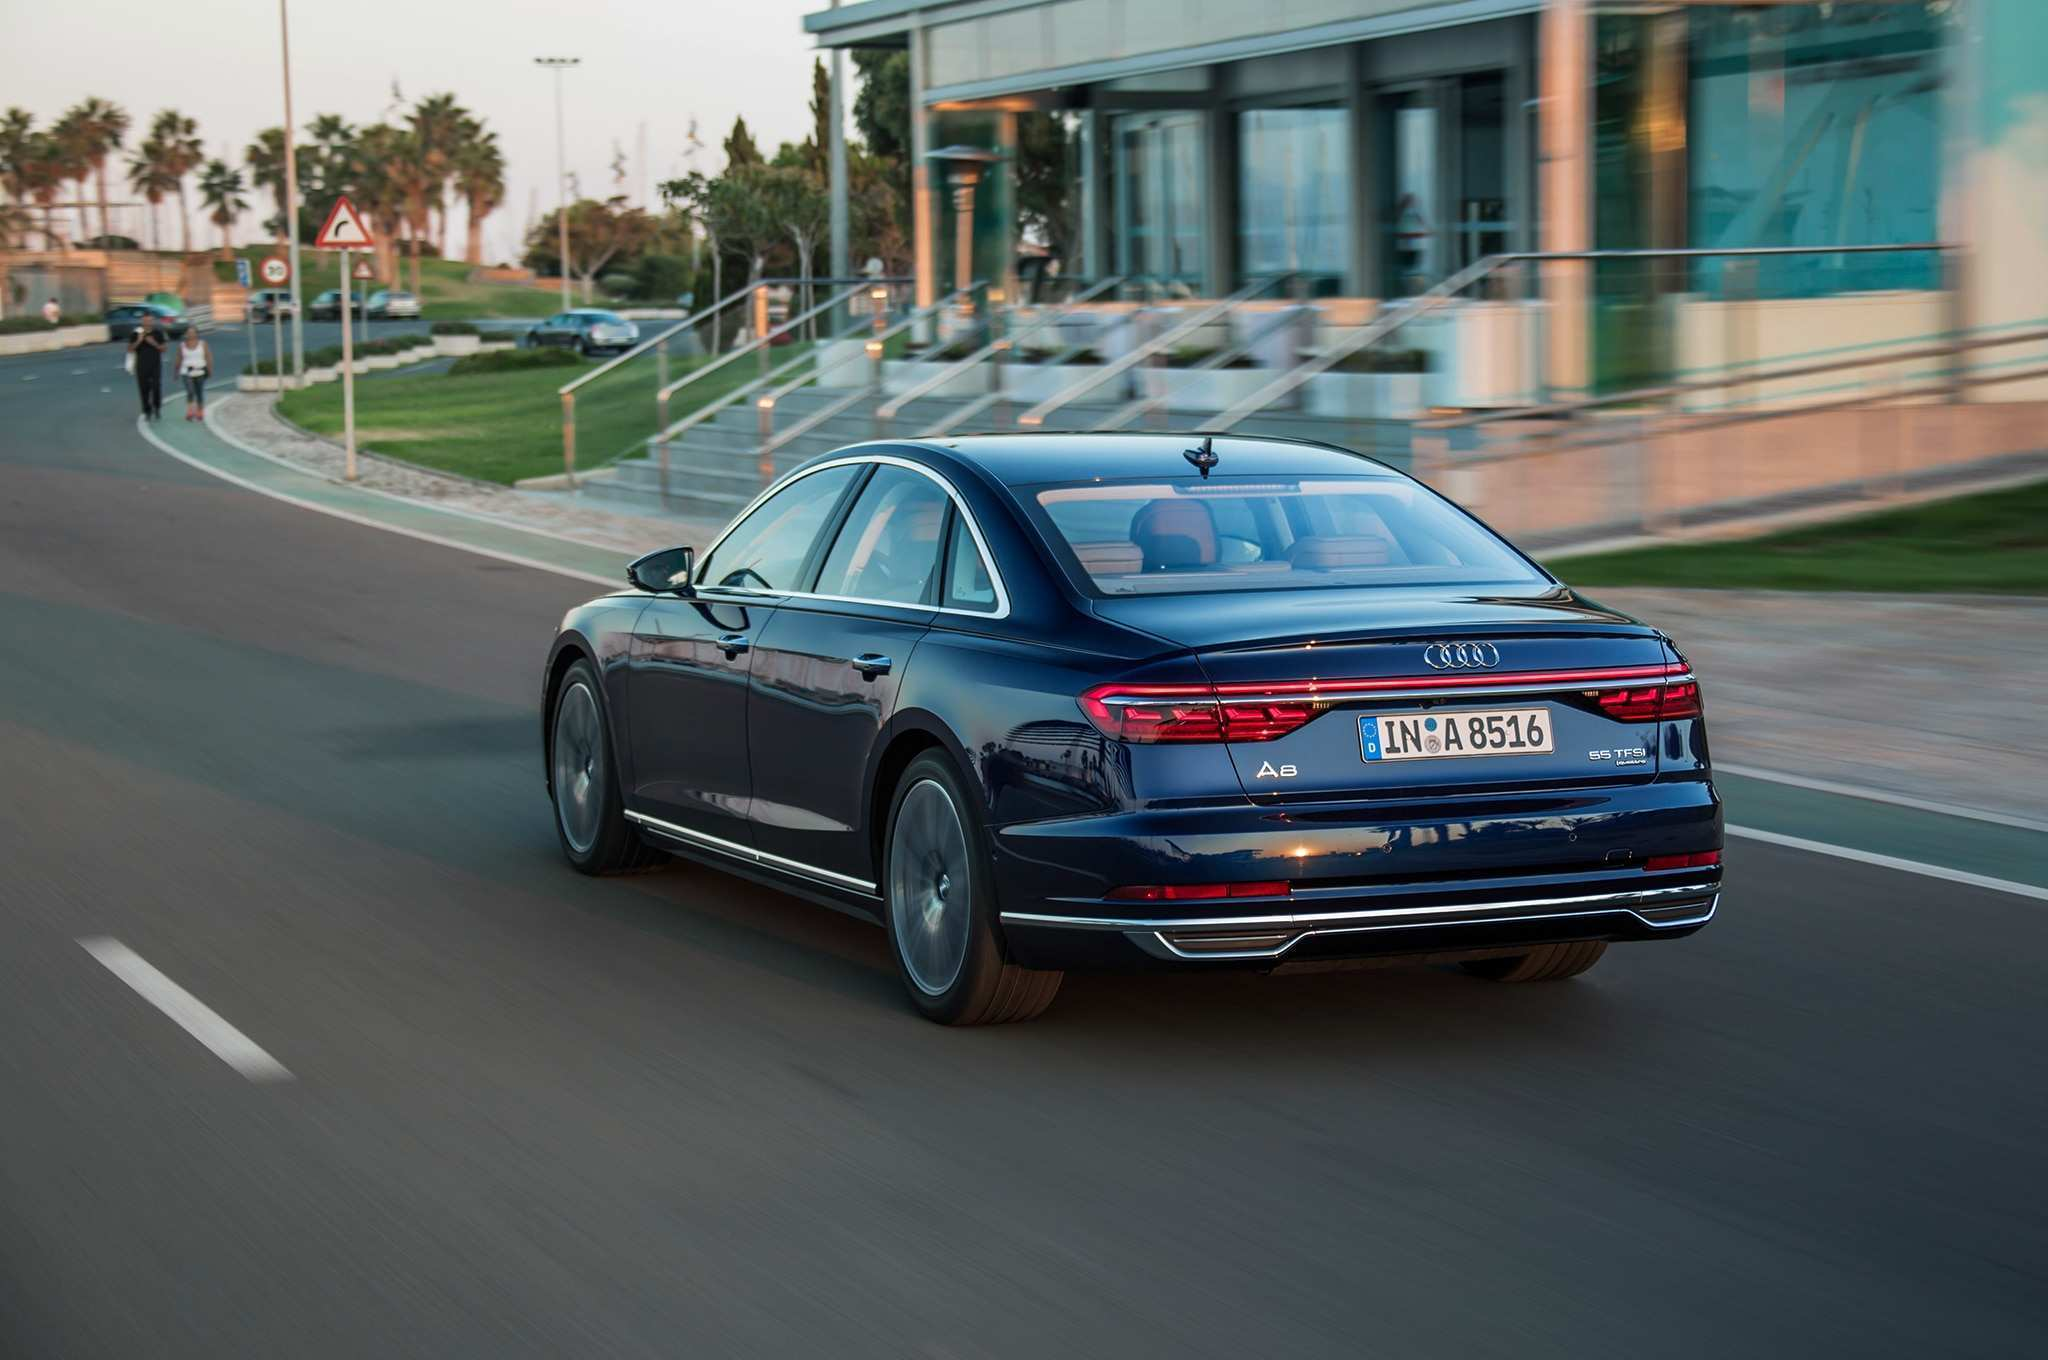 81 Best Review 2019 Audi A8 Debut Pictures with 2019 Audi A8 Debut